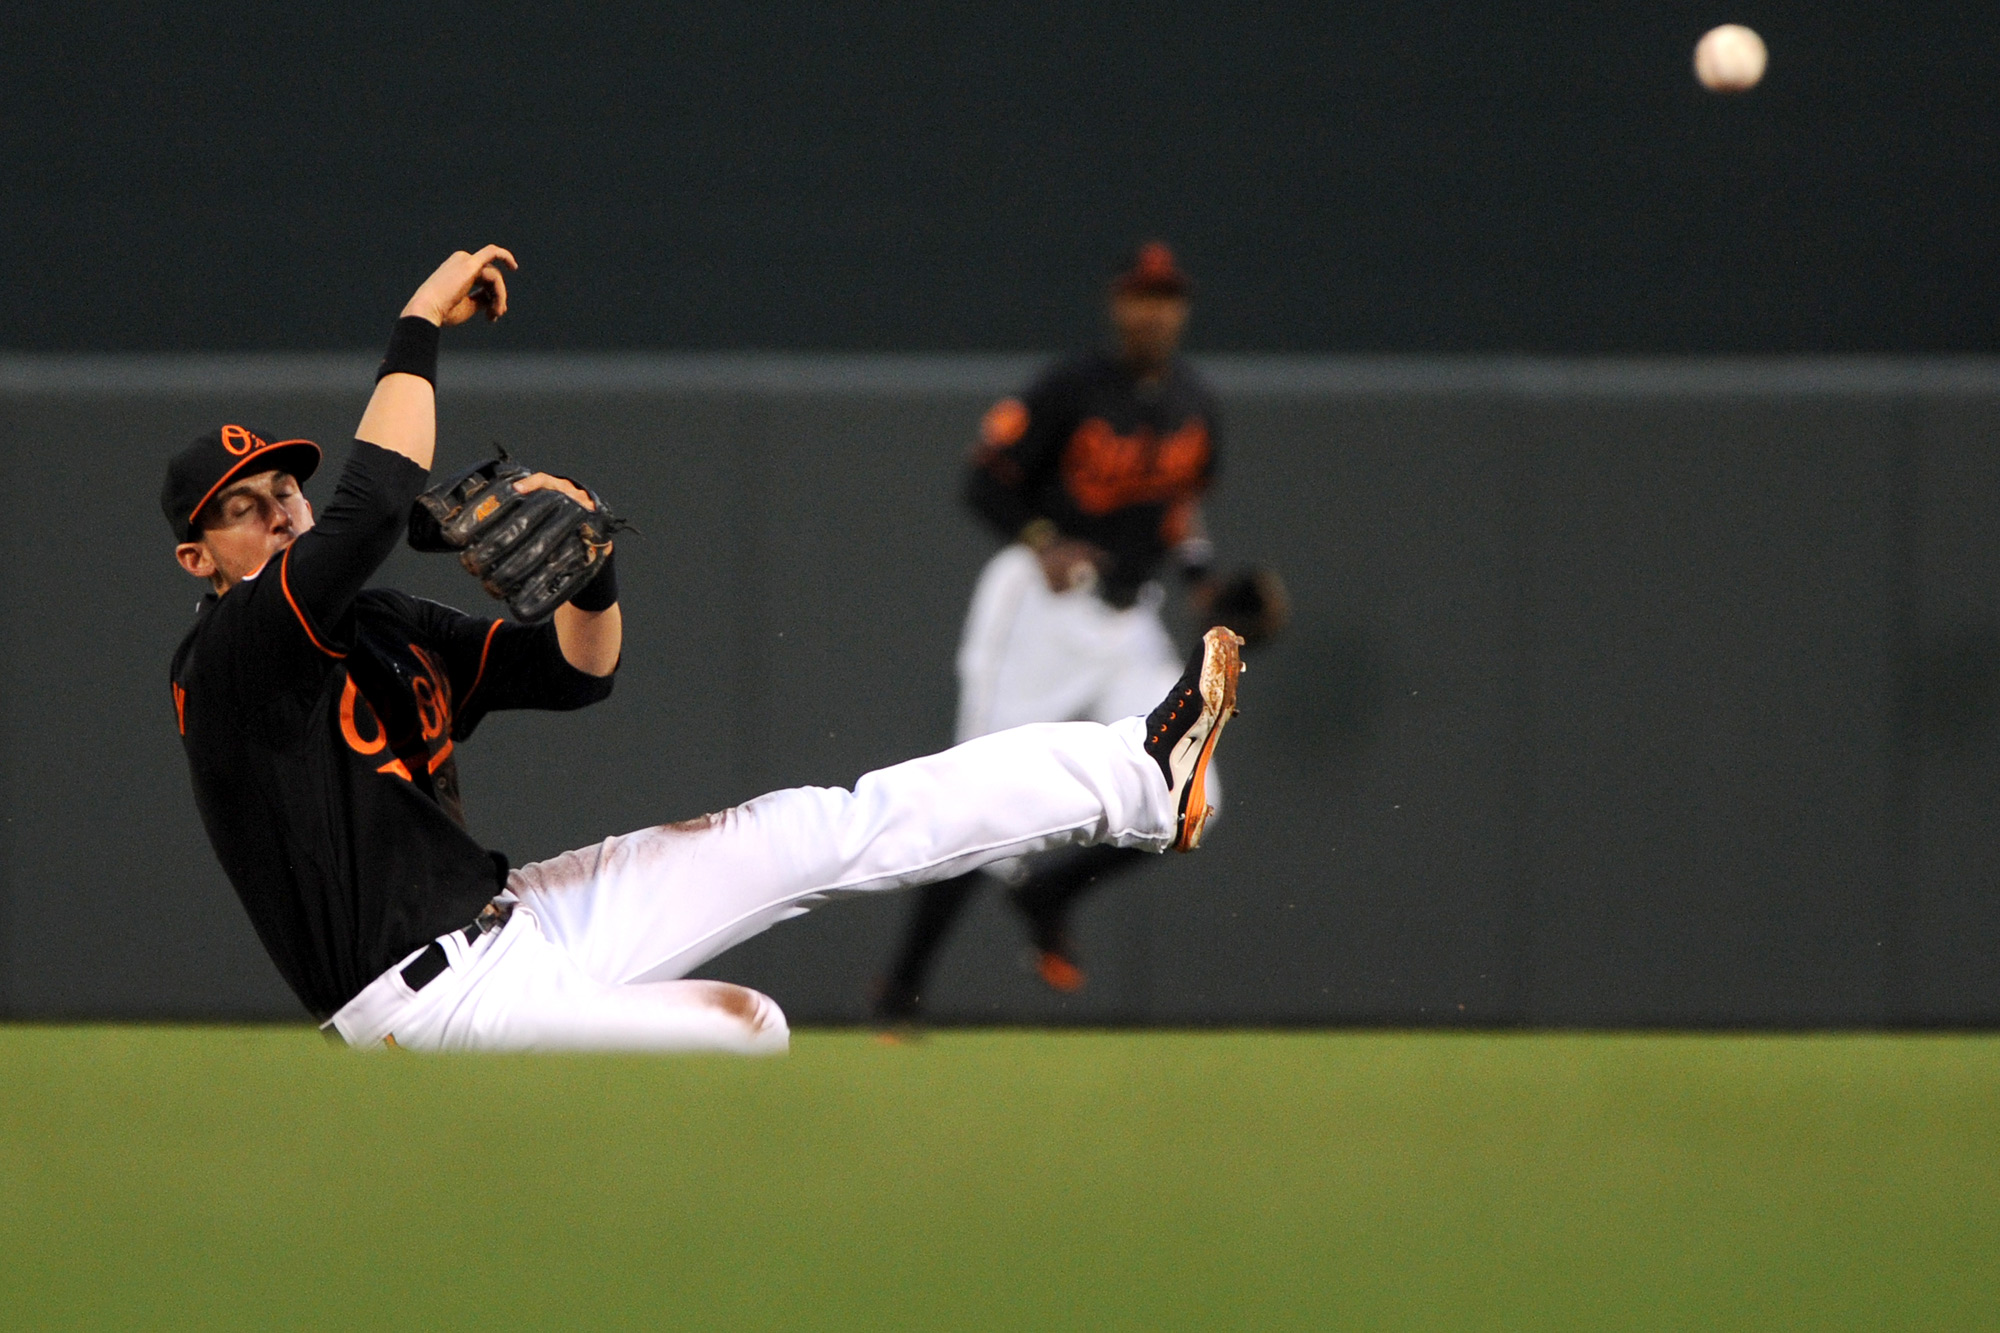 Baltimore Orioles second baseman Ryan Flaherty falls to the dirt after making a throw to first on June 30, 2013 at Oriole Park at Camden Yards in Baltimore, Md.